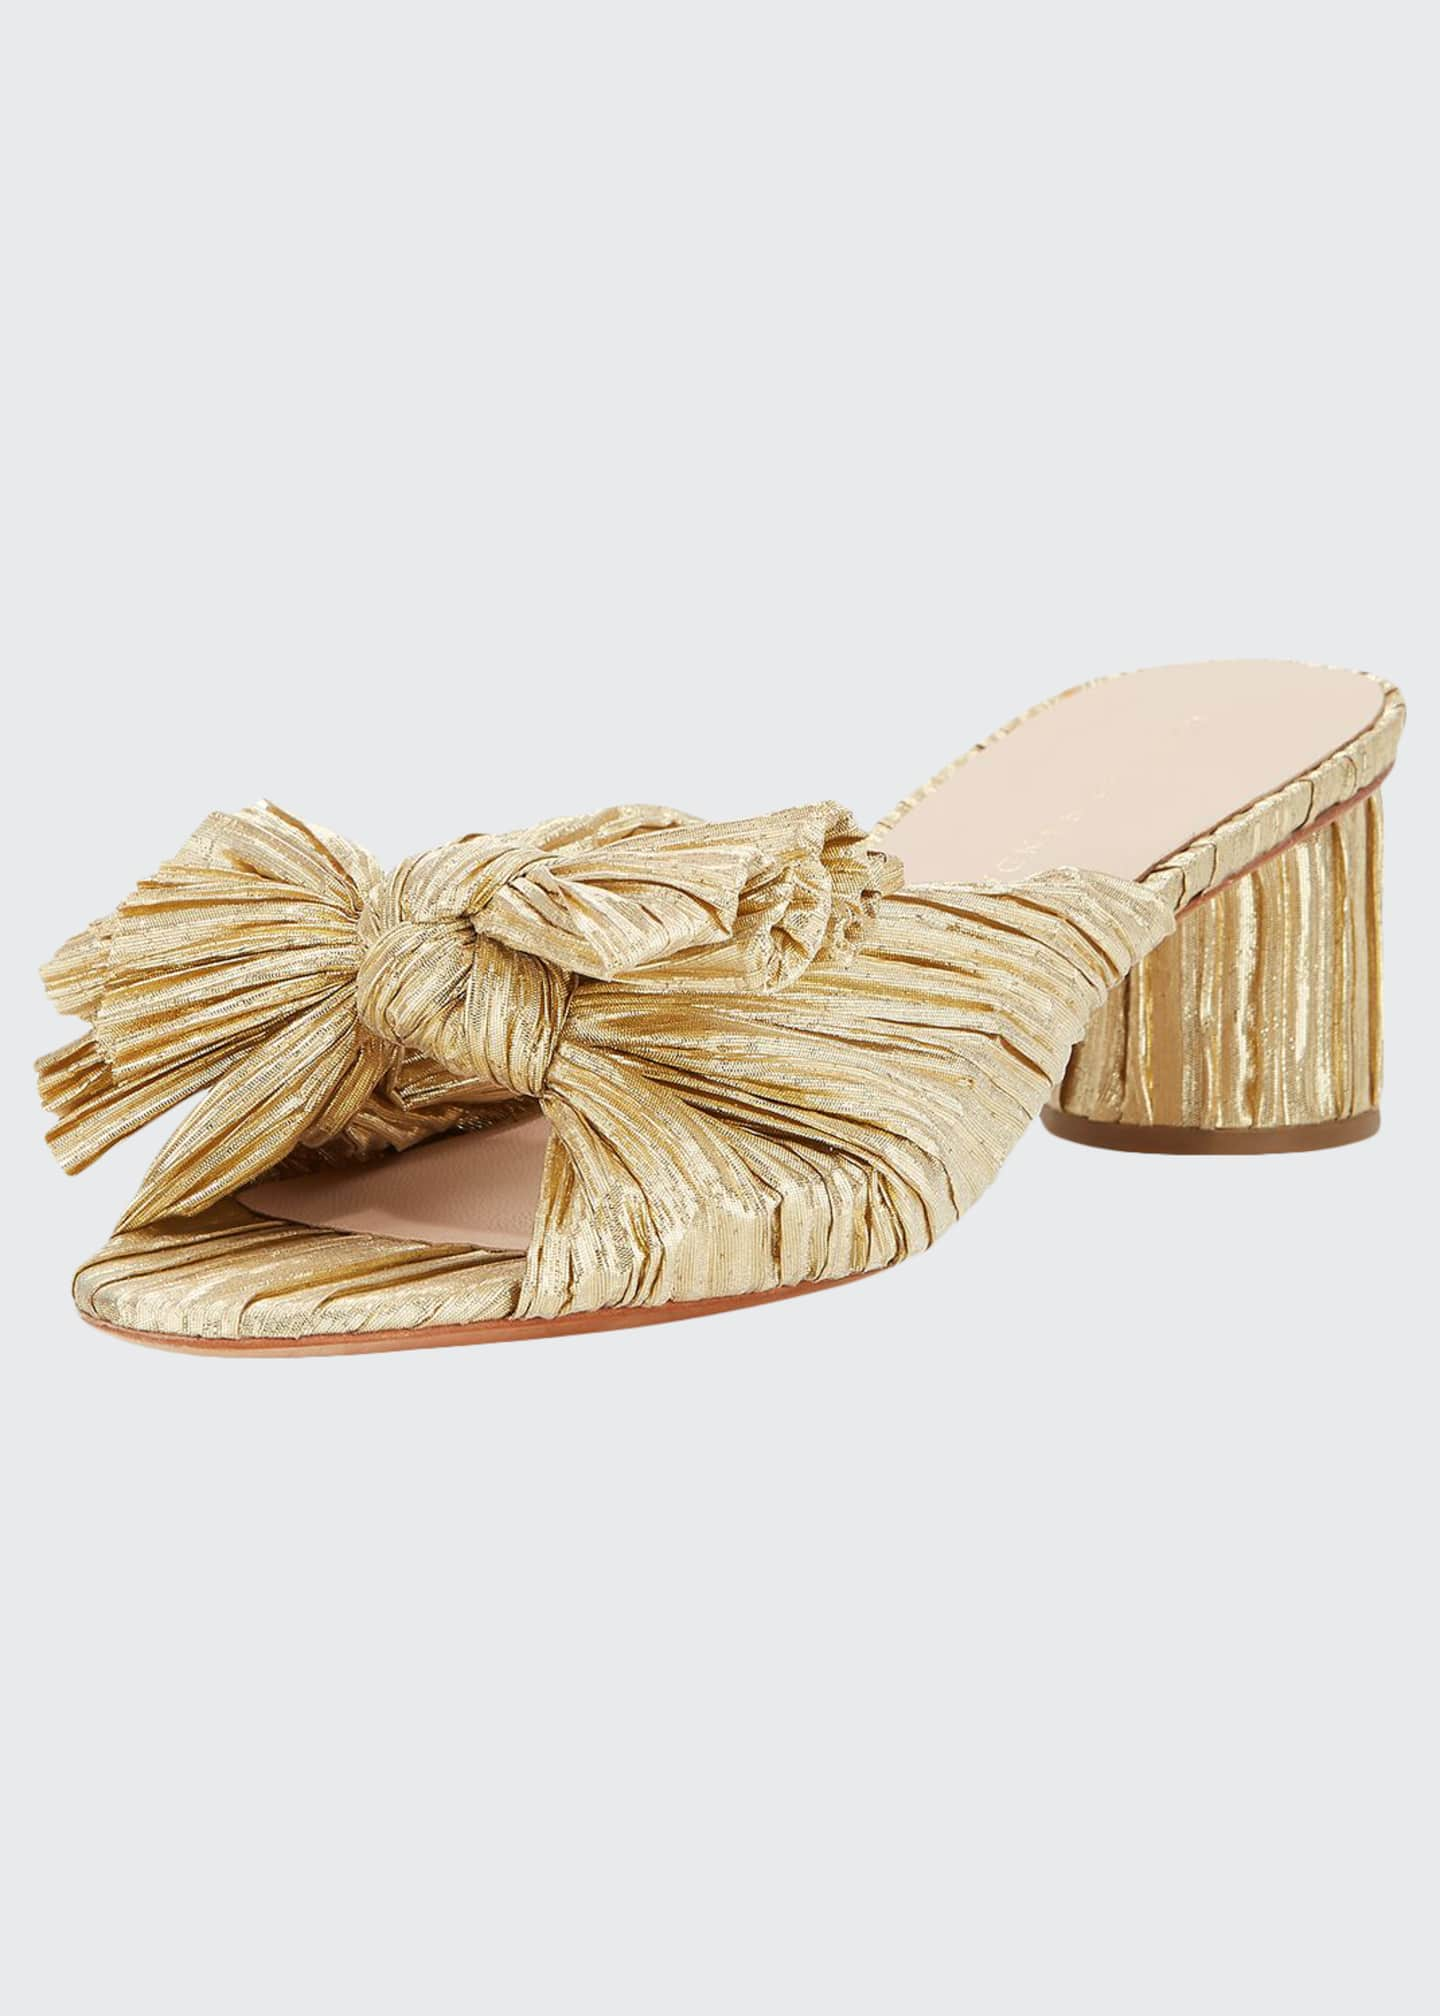 Loeffler Randall Emilia Pleated Knot Slide Sandals